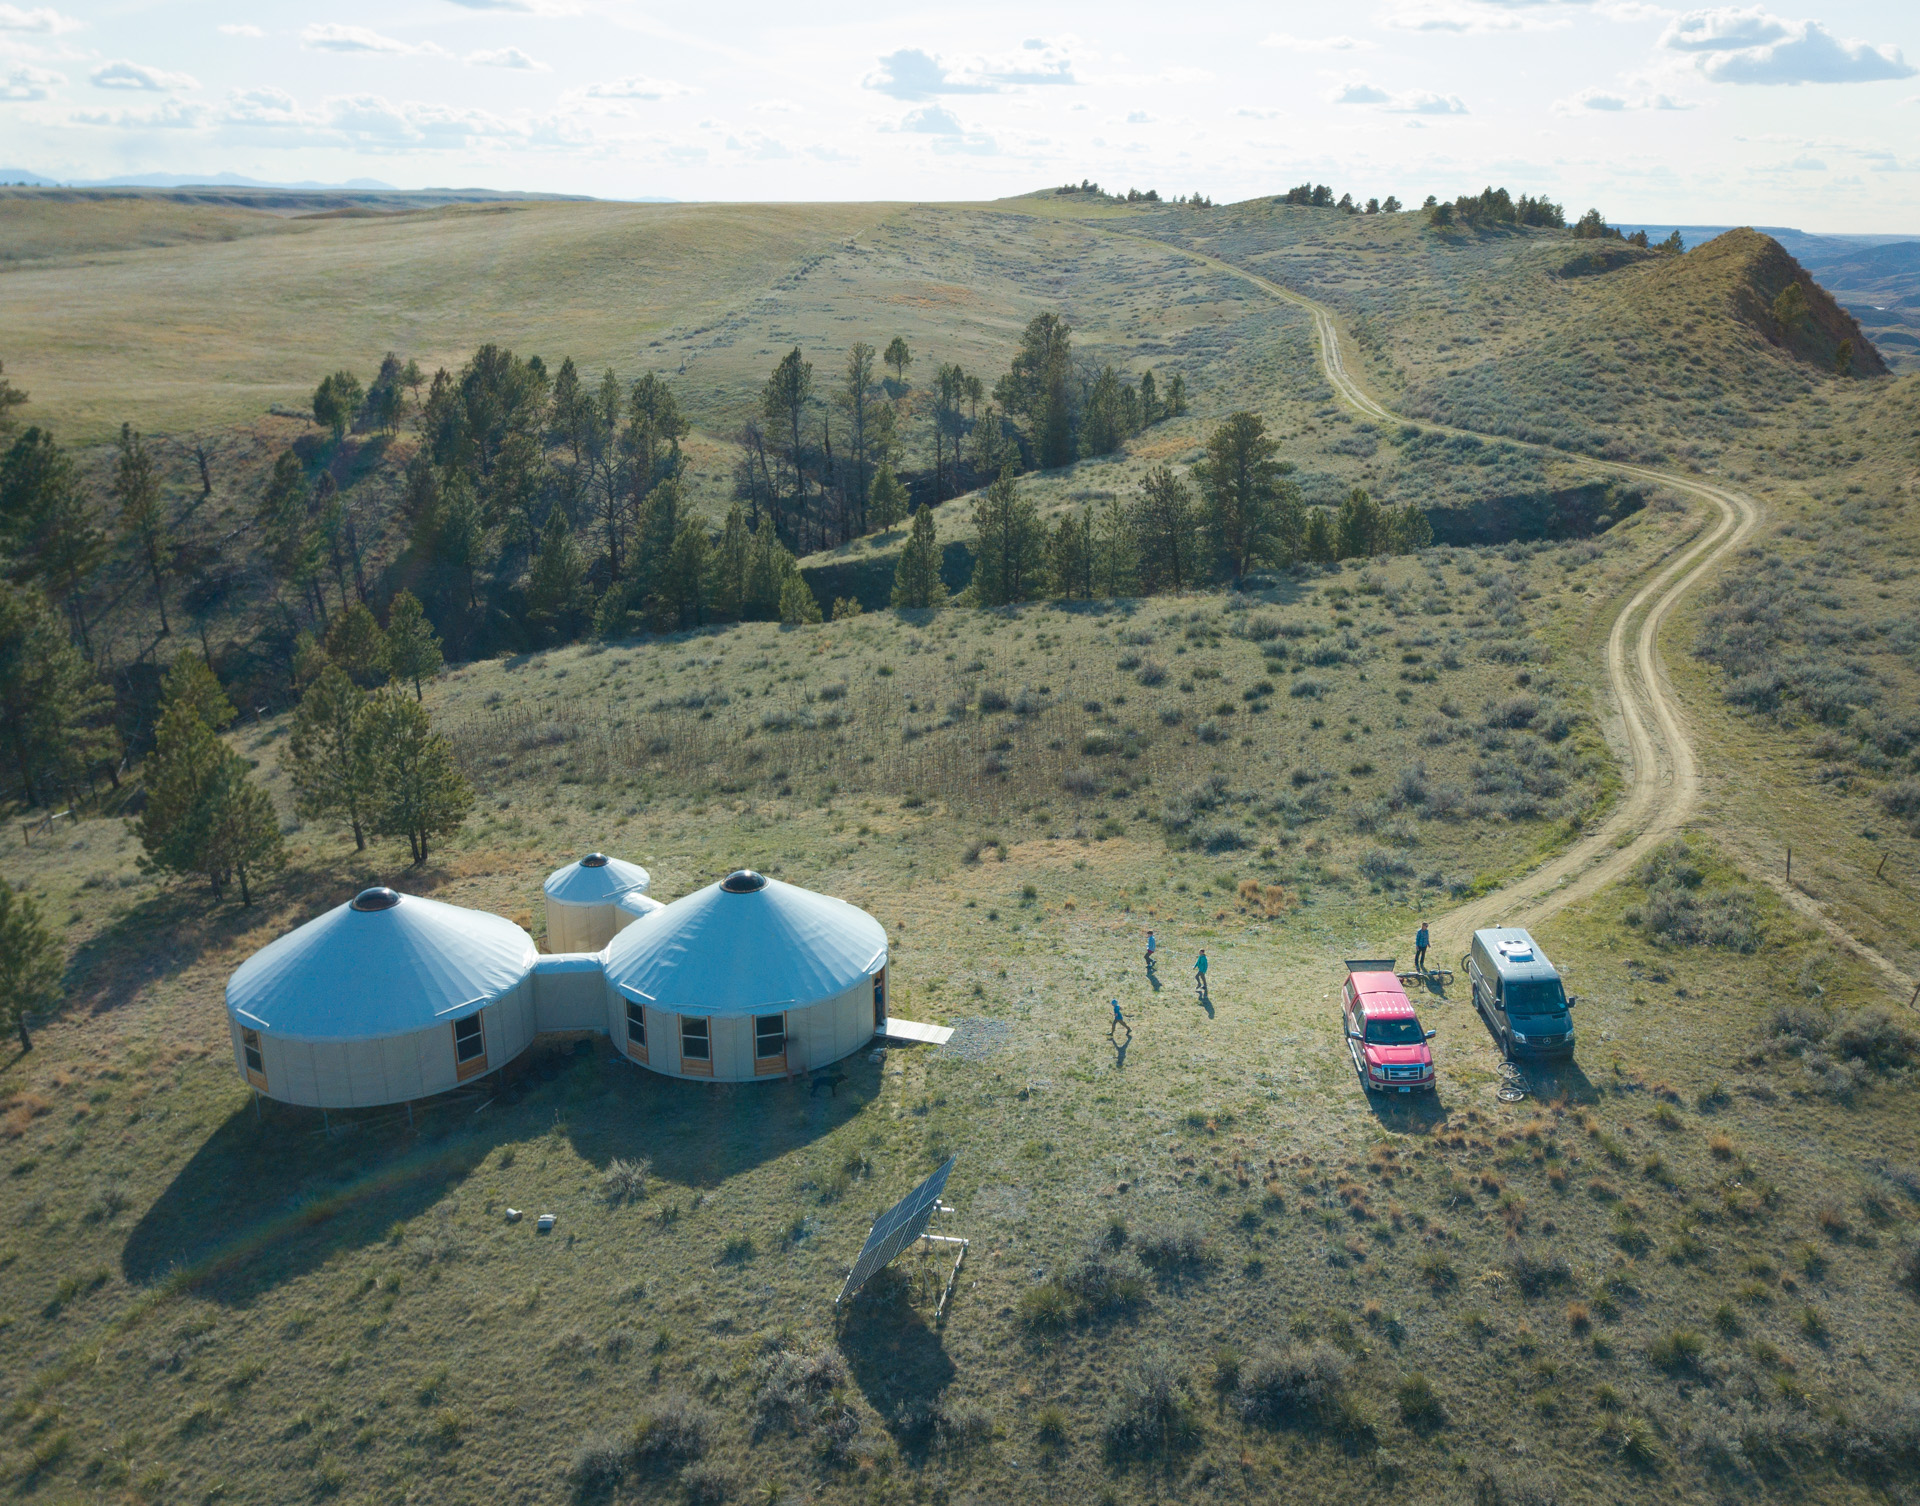 Ariel view of Founder Hut yurts in Montana on American Prairie Reserve